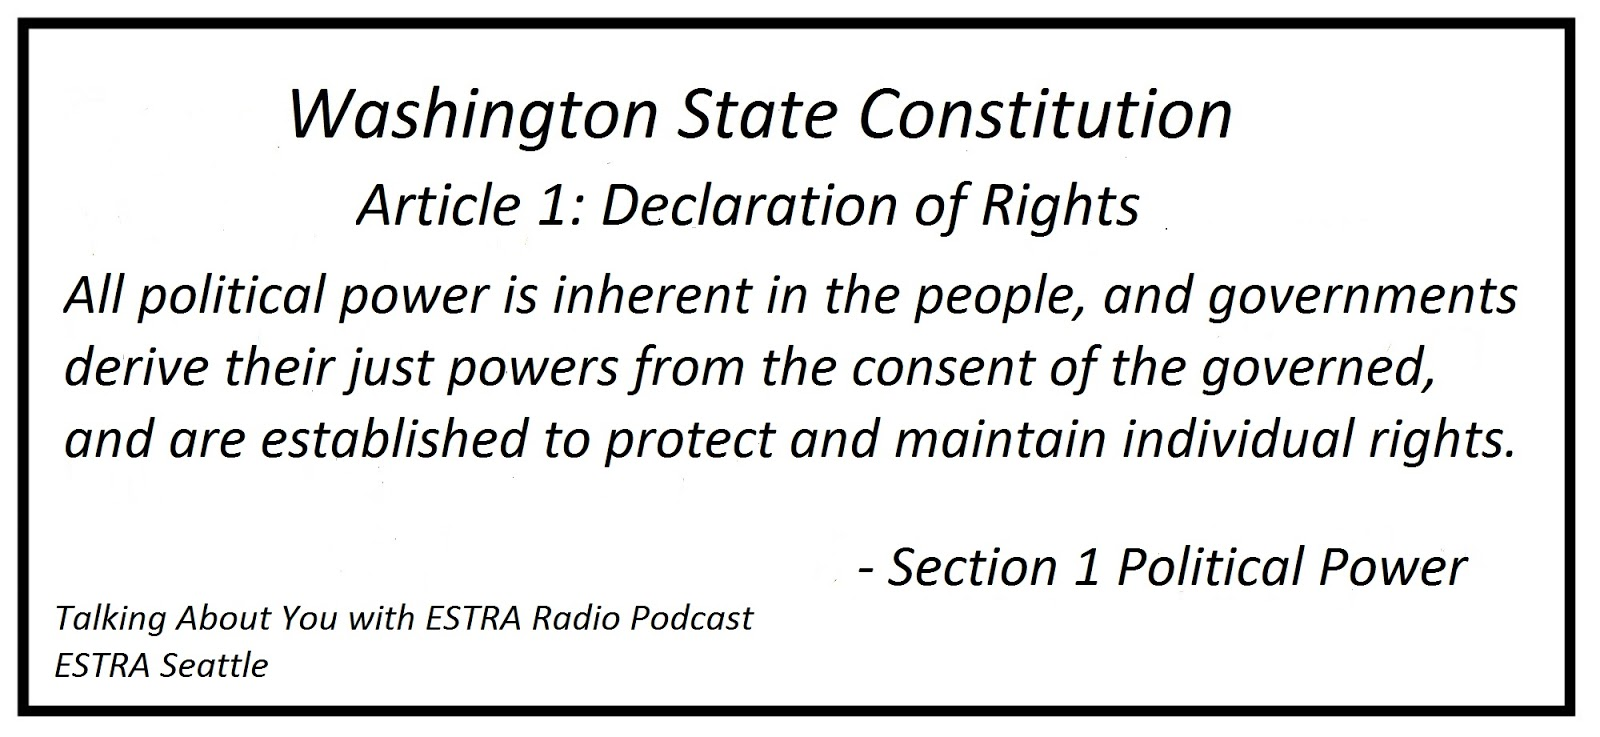 section 1 of constitution